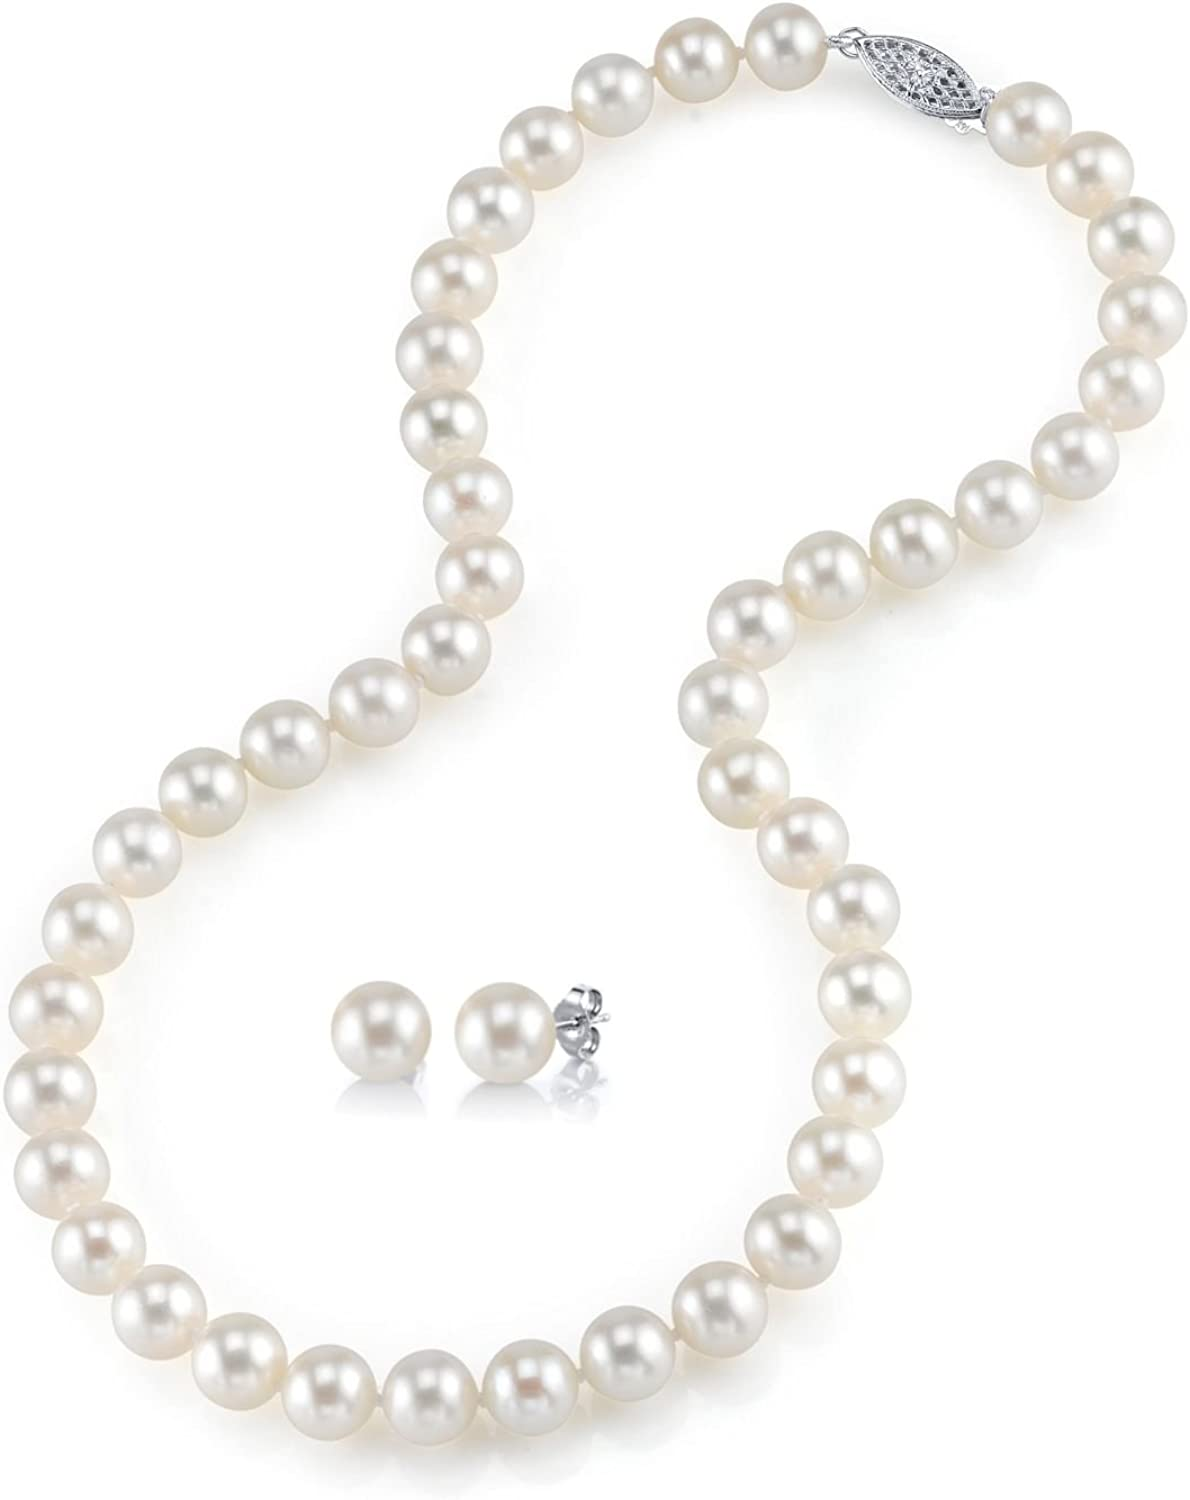 THE PEARL SOURCE 14K Gold 8-9mm Round White Freshwater Cultured Pearl Necklace & Earrings Set in 20